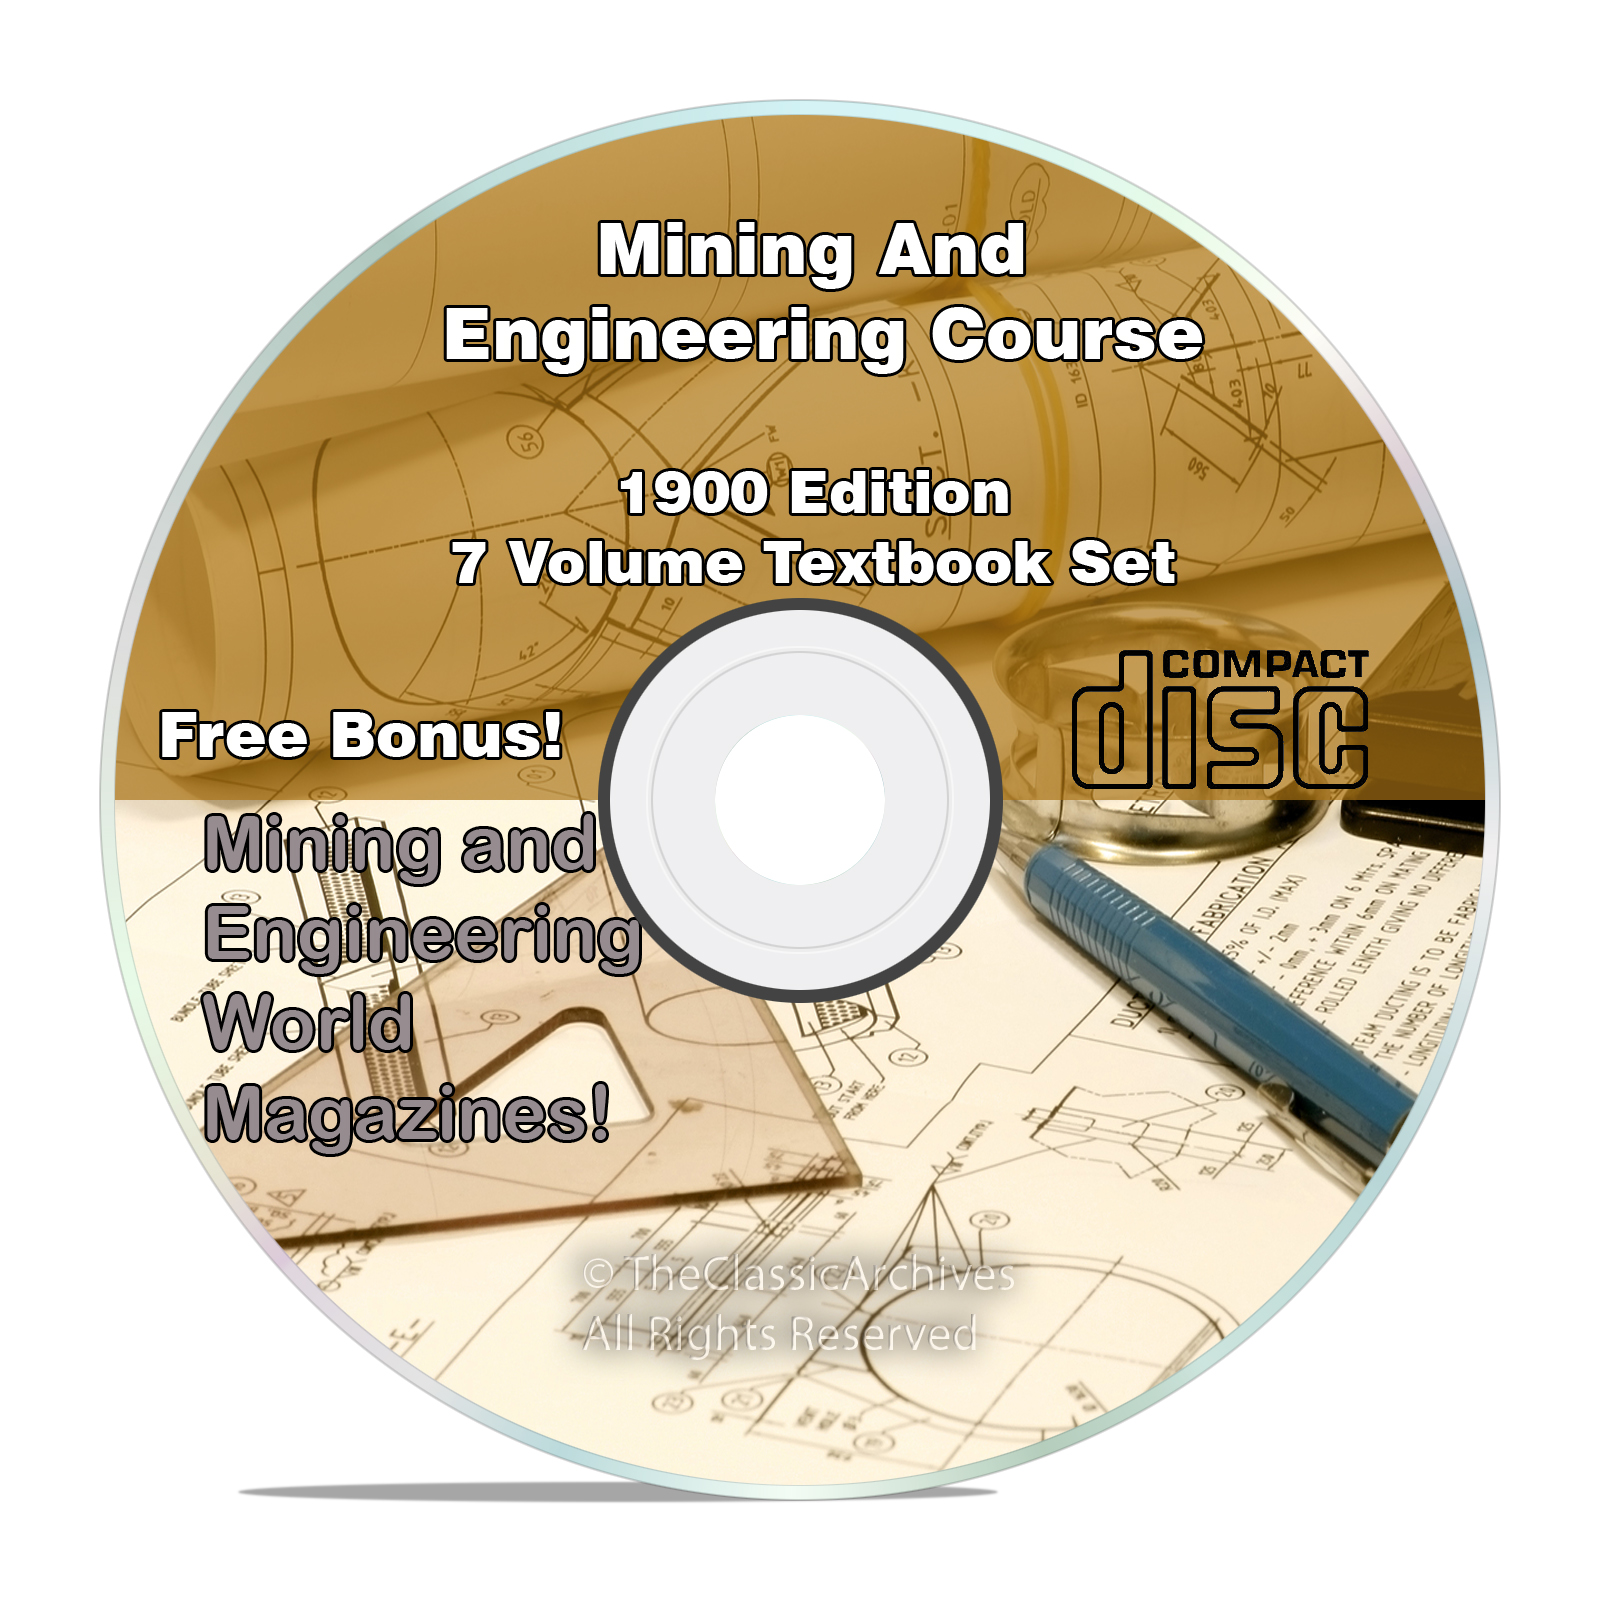 Mining & Engineering Textbook Course, Learn How To Mine Gold, 7 Volume CD